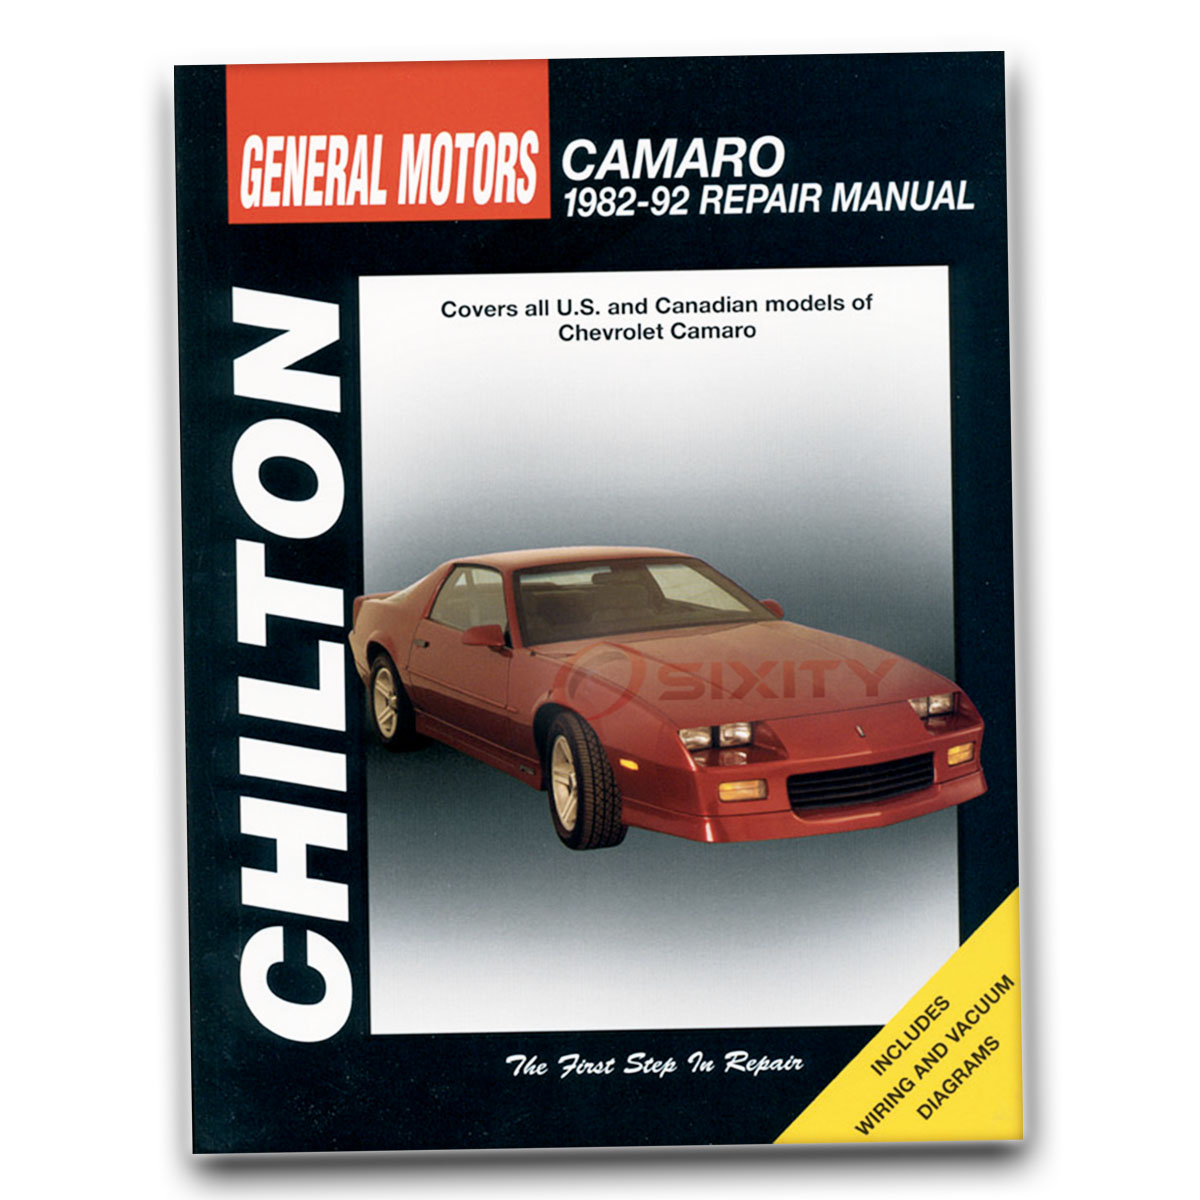 1990 Chevy Silverado 2500 Service Manual Suburban Wiring Diagram Chilton Repair For Camaro Z28 Iroc Z Berlinetta Rh Ebay Com Pick Up 1995